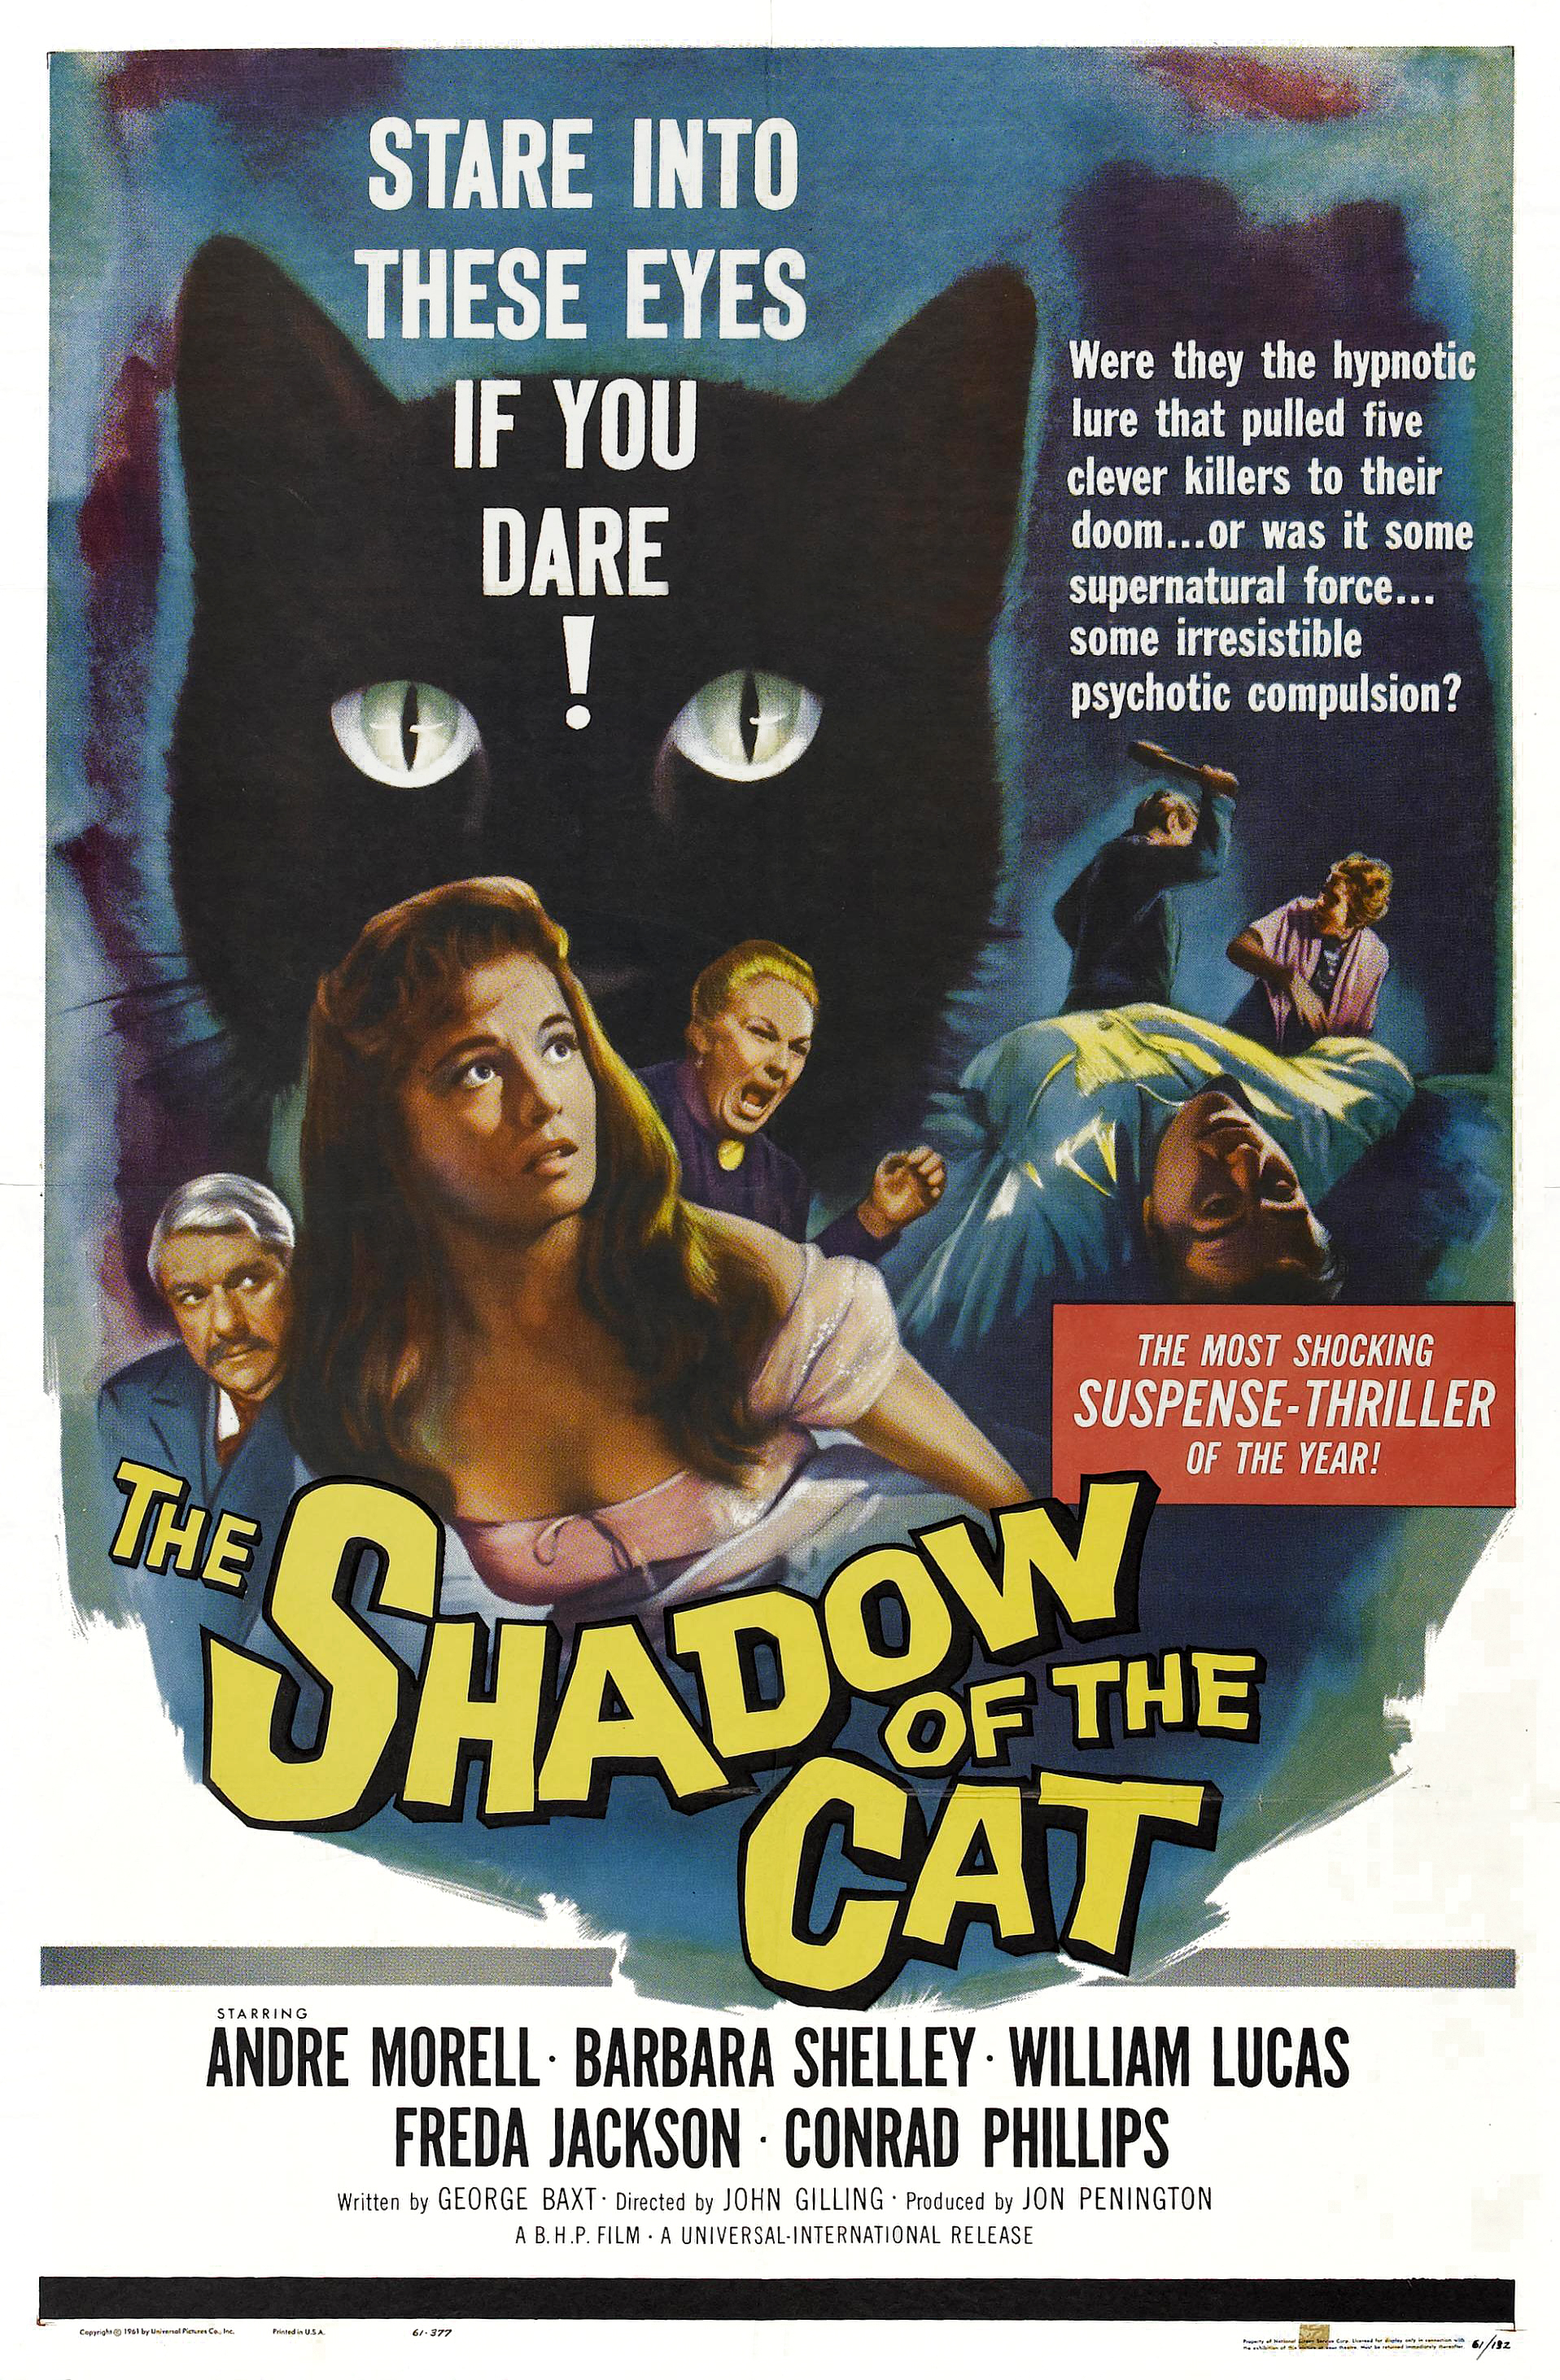 The Shadow of the Cat hd on soap2day